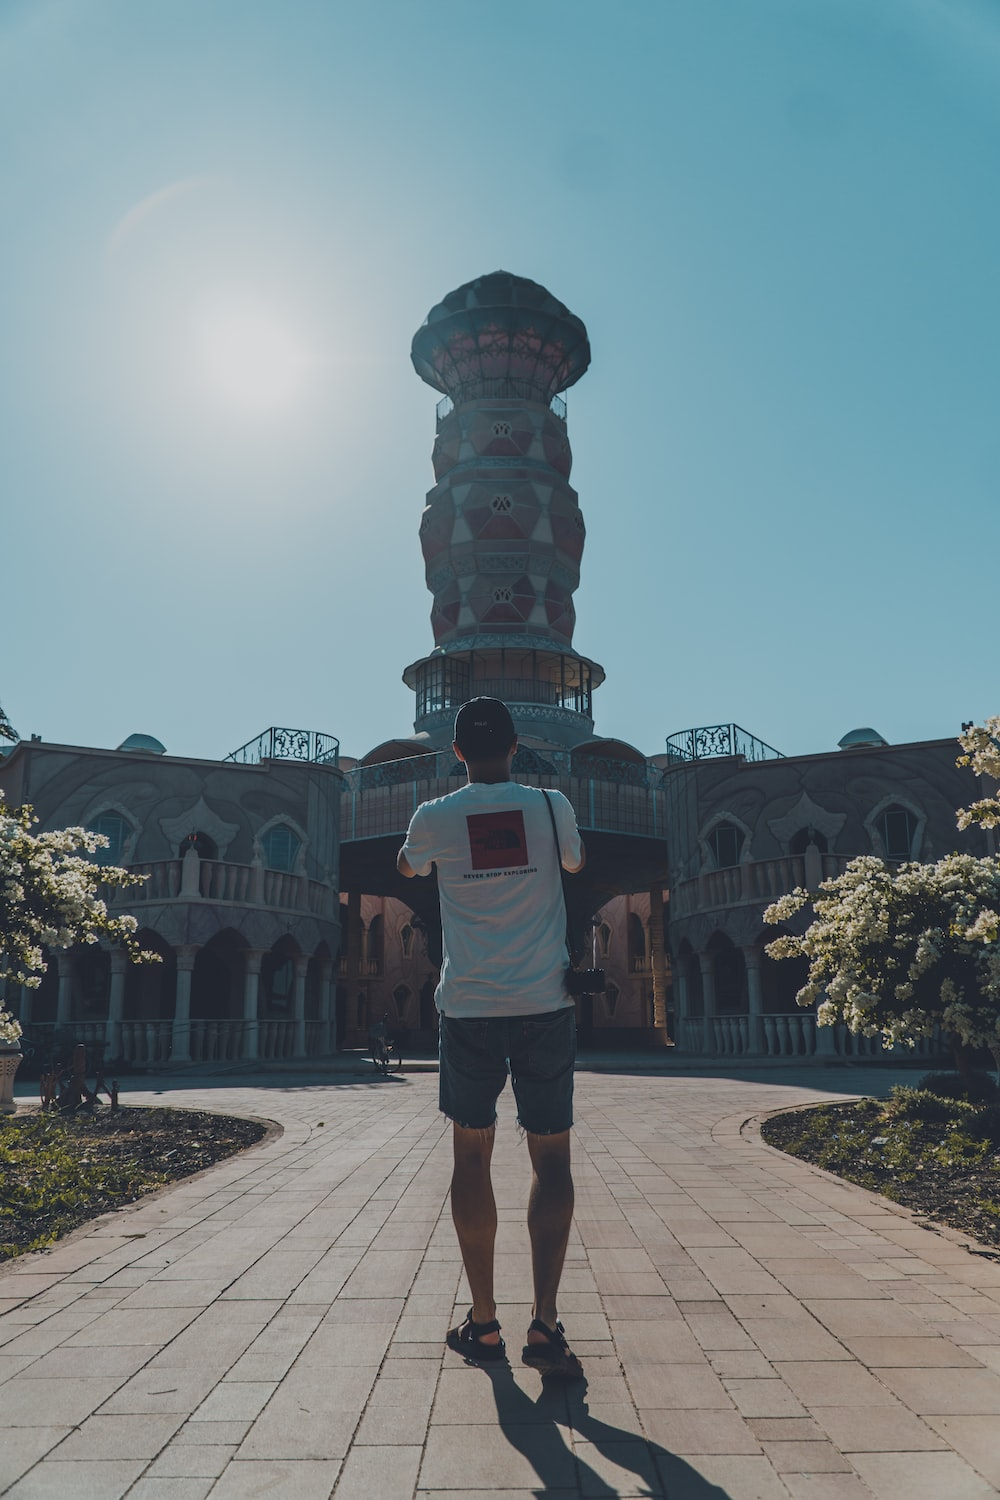 man in white t-shirt and brown shorts standing near brown concrete building during daytime